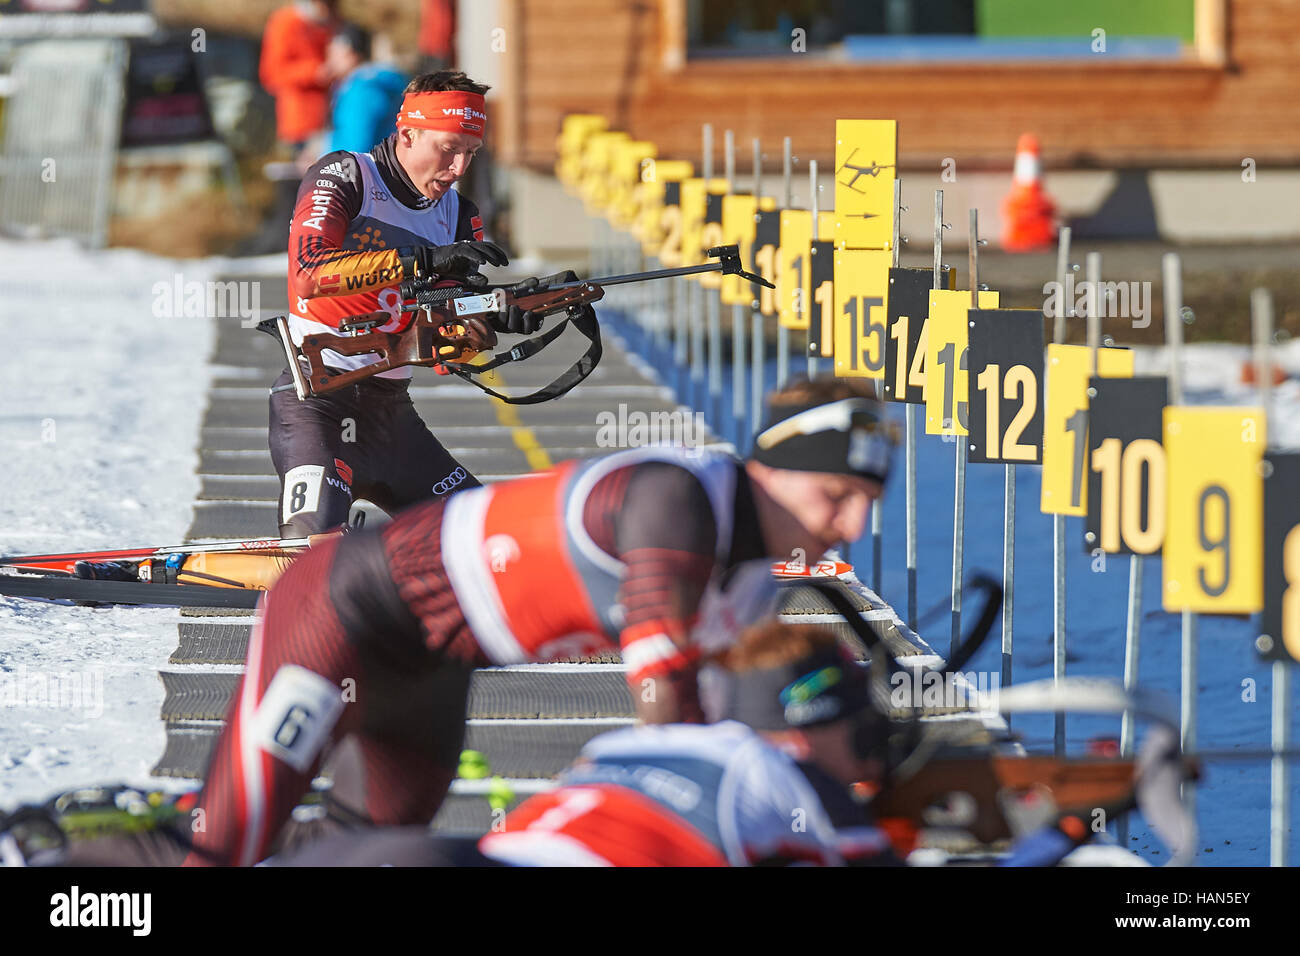 Lenzerheide, Switzerland. 3rd December 2016. Maximilian Janke from WSV Oberhof is preparing for shooting at the - Stock Image